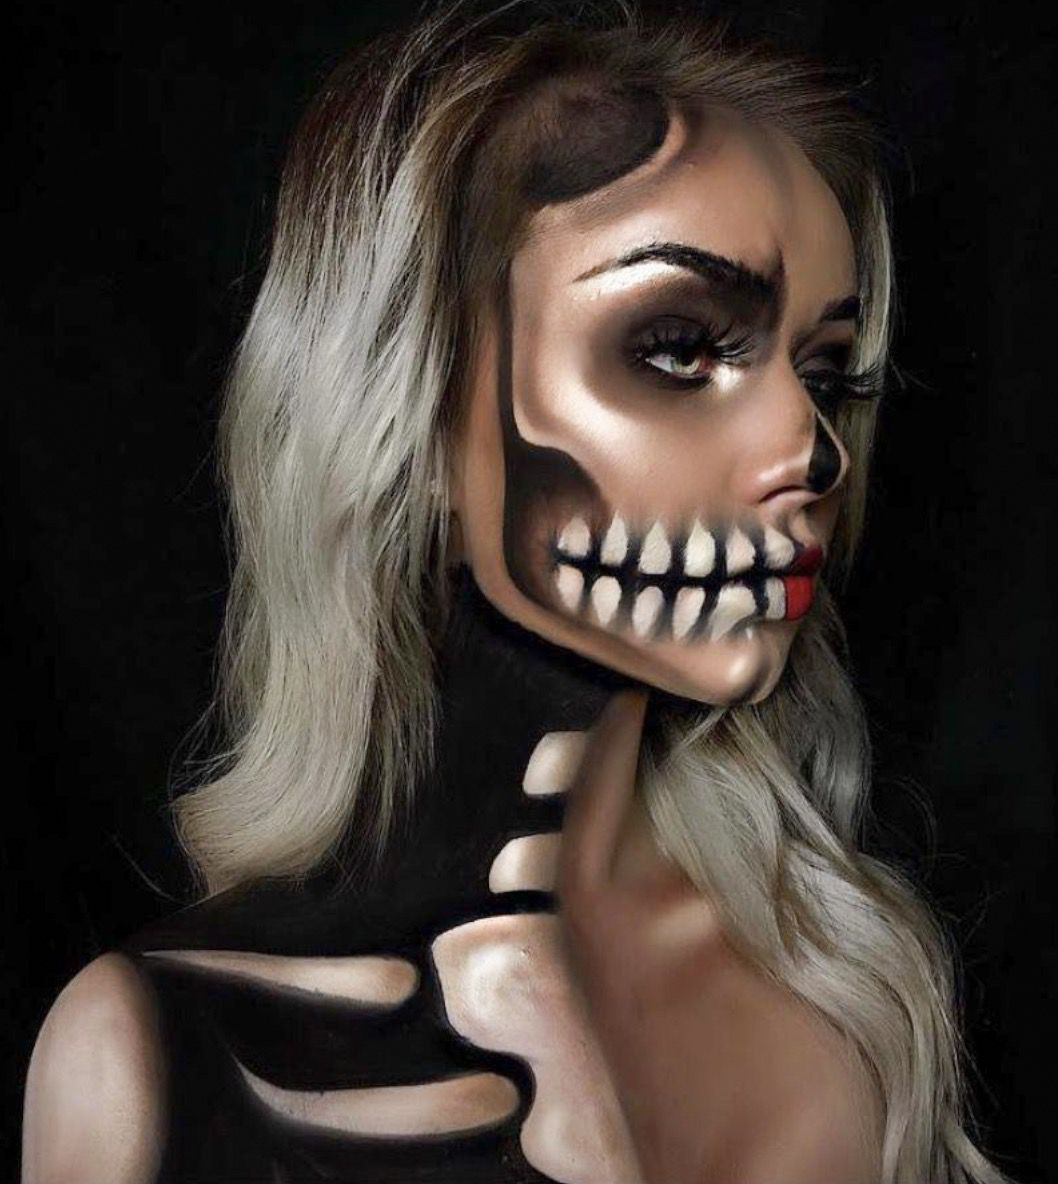 41 Most Jaw-Dropping Halloween Makeup Ideas That Are Still Pretty: Pretty Skull Makeup That Glows / Click though to see more awe inspiring pretty Halloween makeup looks, gorgeous Halloween makeup and Halloween costumes. #halloweenmakeup #halloweenmakeuppretty #halloweencostumes #halloweenmakeupinspo #prettyskullmakeup #skullmakeup